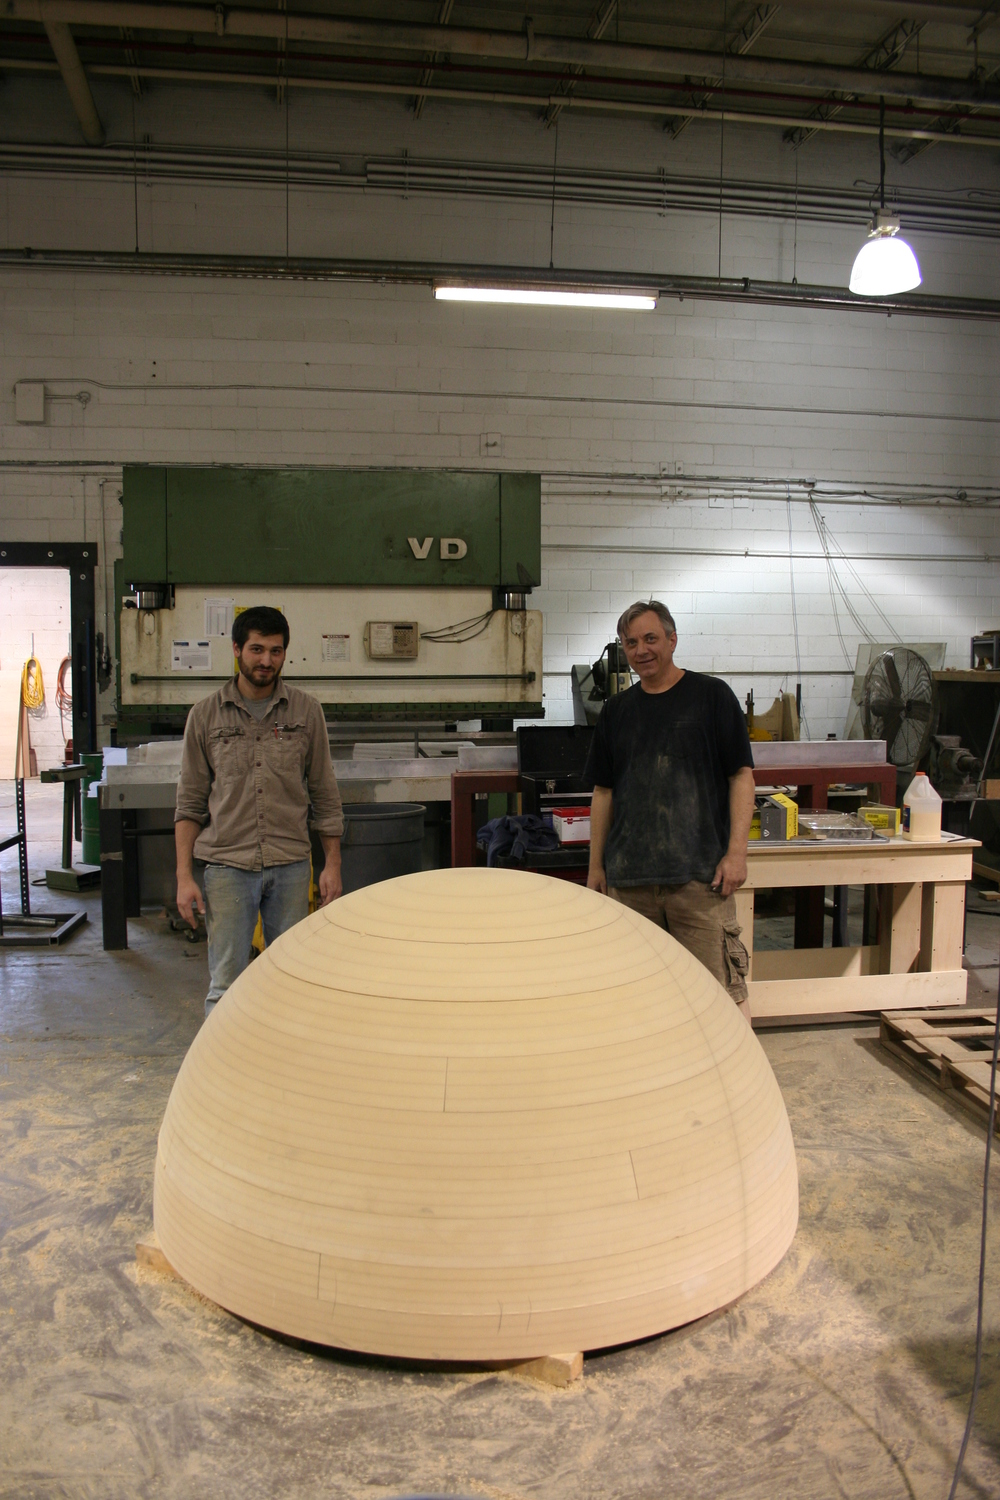 When we began work on the full-size globe, we first created a MDF hemisphere in order to allow for the creation of the wax models of the continents.